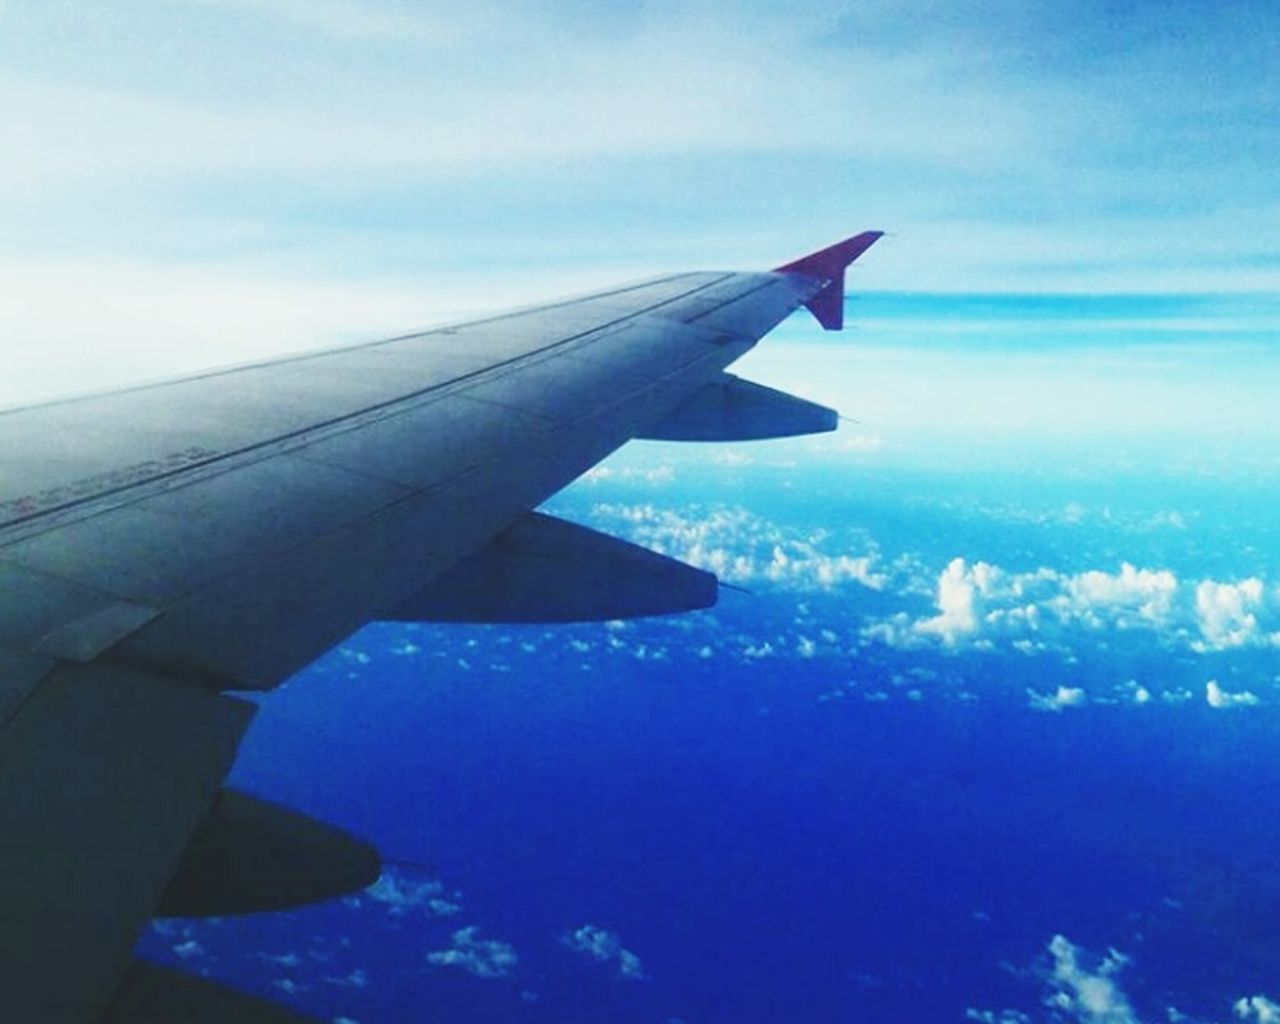 airplane, sky, transportation, cloud - sky, aircraft wing, aerial view, no people, air vehicle, blue, flying, outdoors, day, nature, close-up, airplane wing